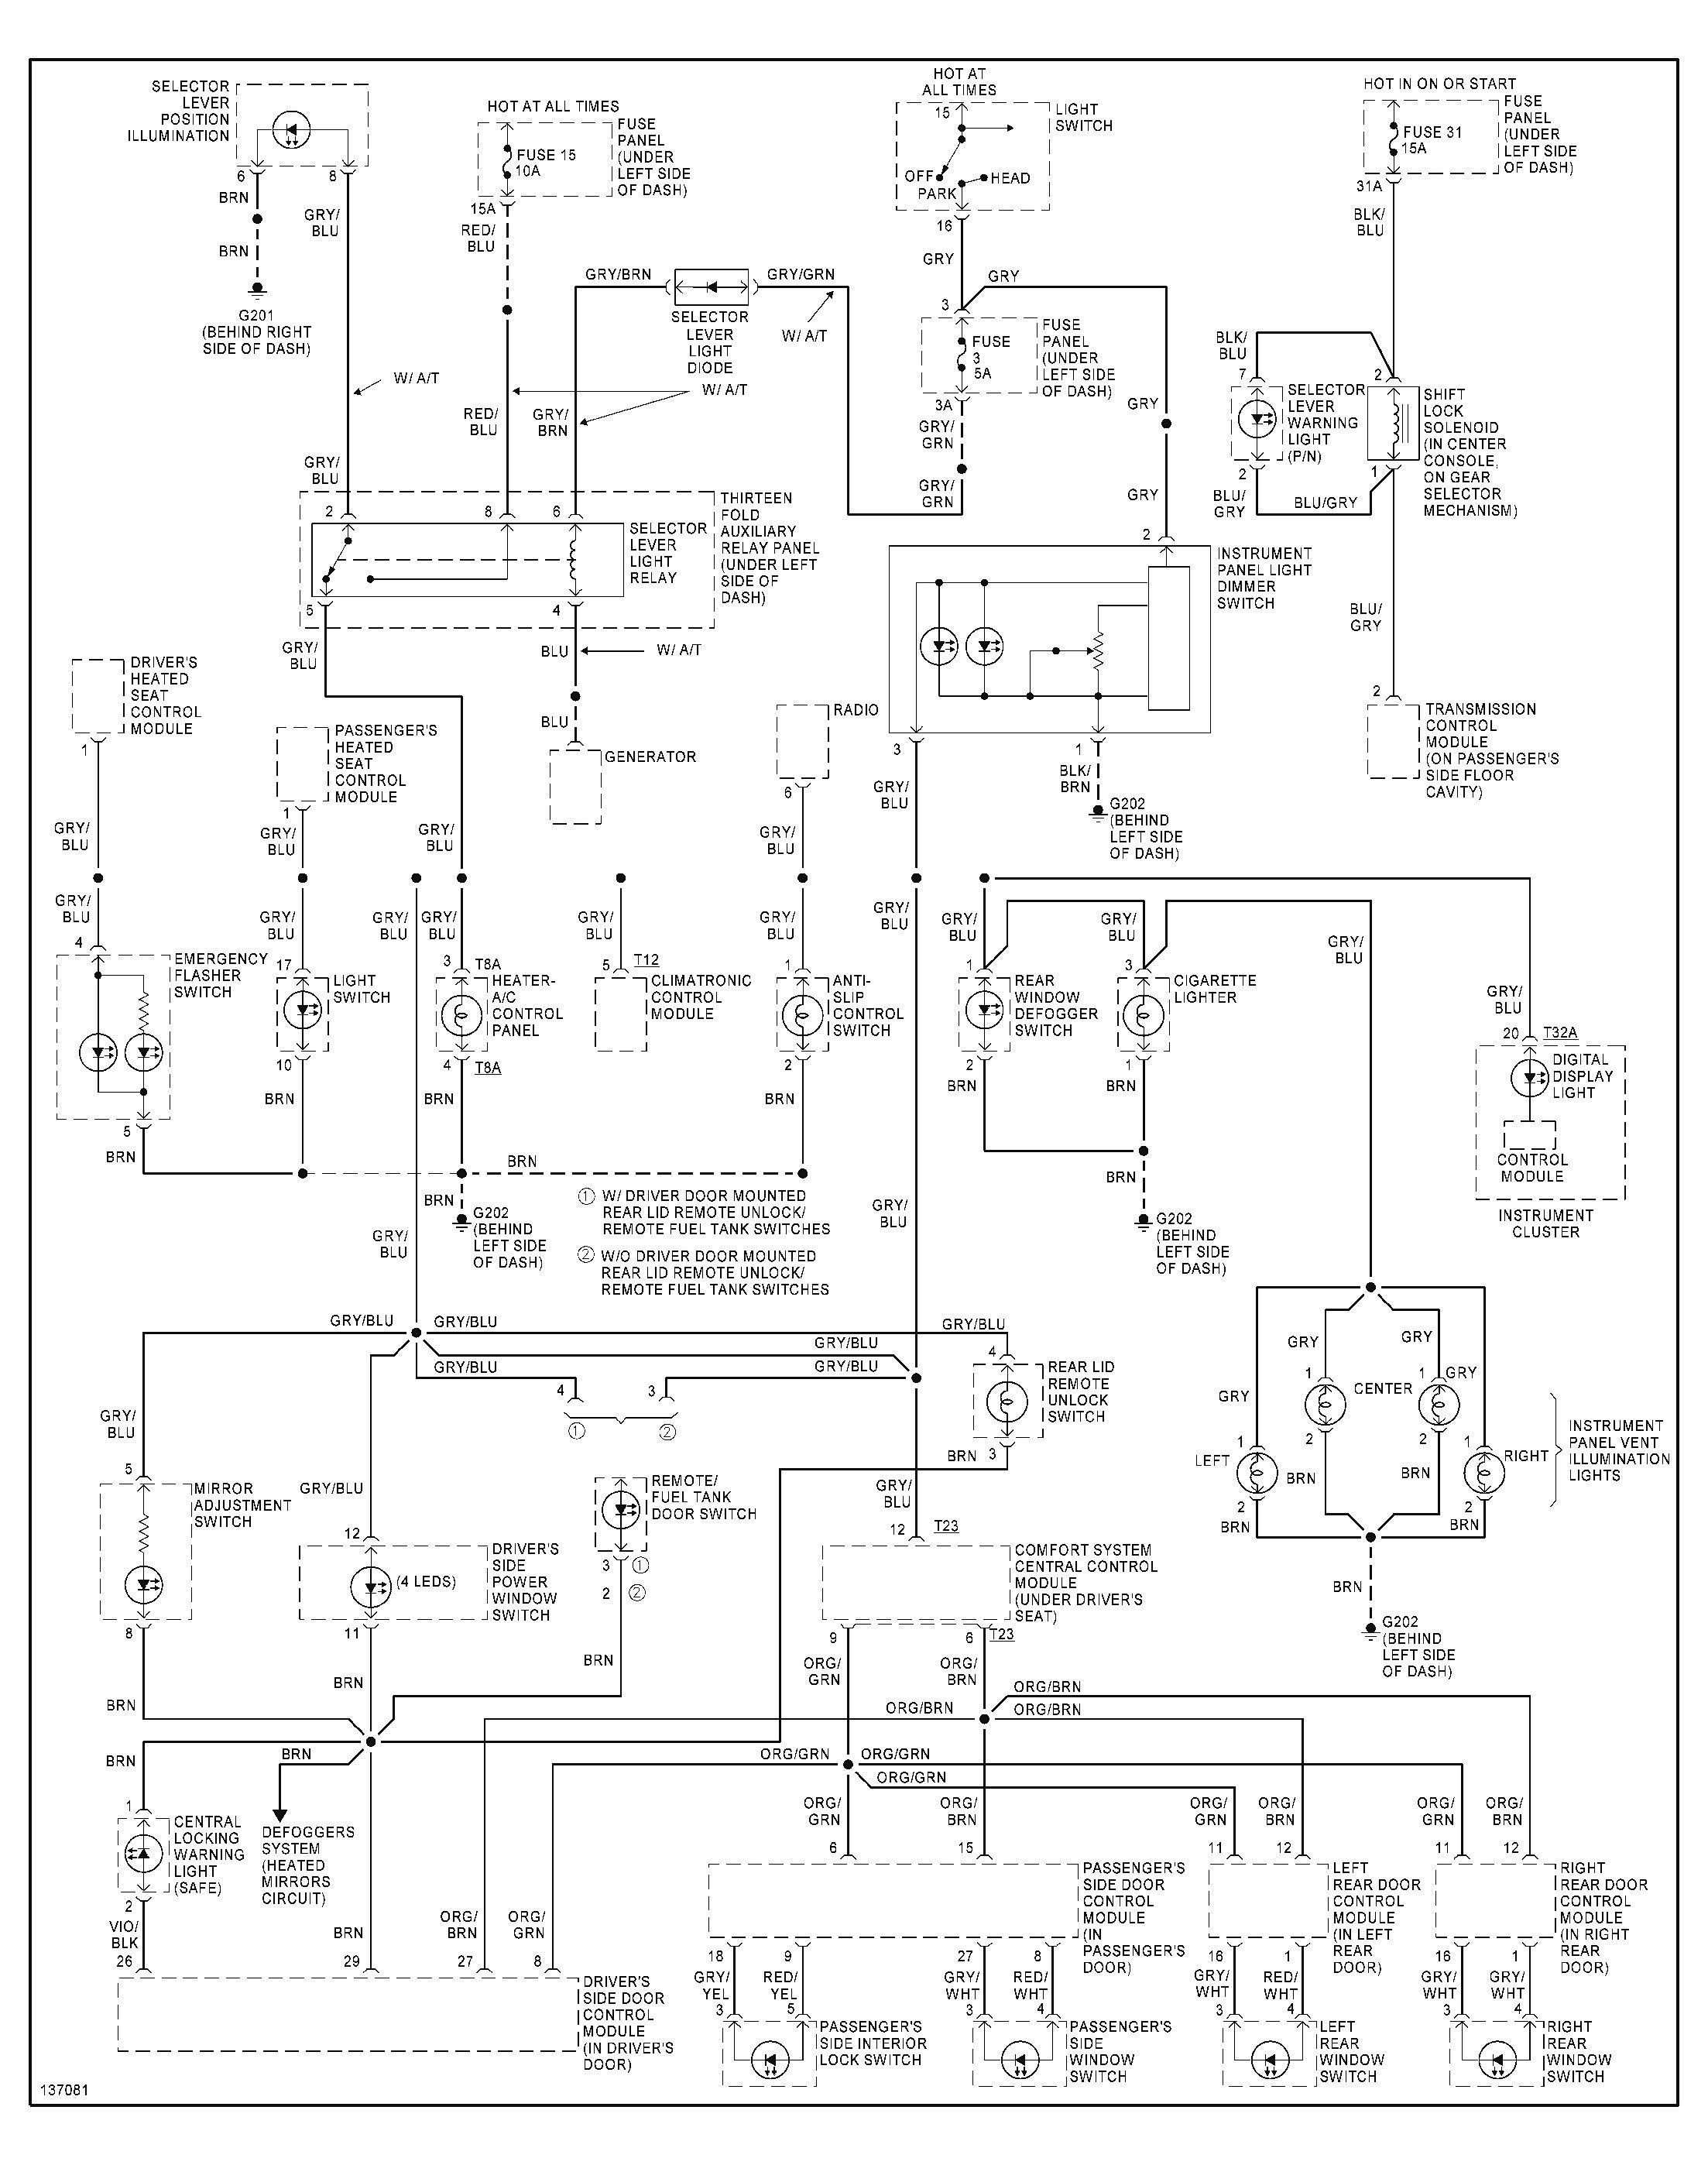 DIAGRAM] 1999 Jeep Cherokee Window Wiring Diagram FULL Version HD Quality Wiring  Diagram - OBADIAGRAM.OHIMABRASSERIE.IT | 1998 Jeep Cherokee Window Wiring Diagram |  | Diagram Database